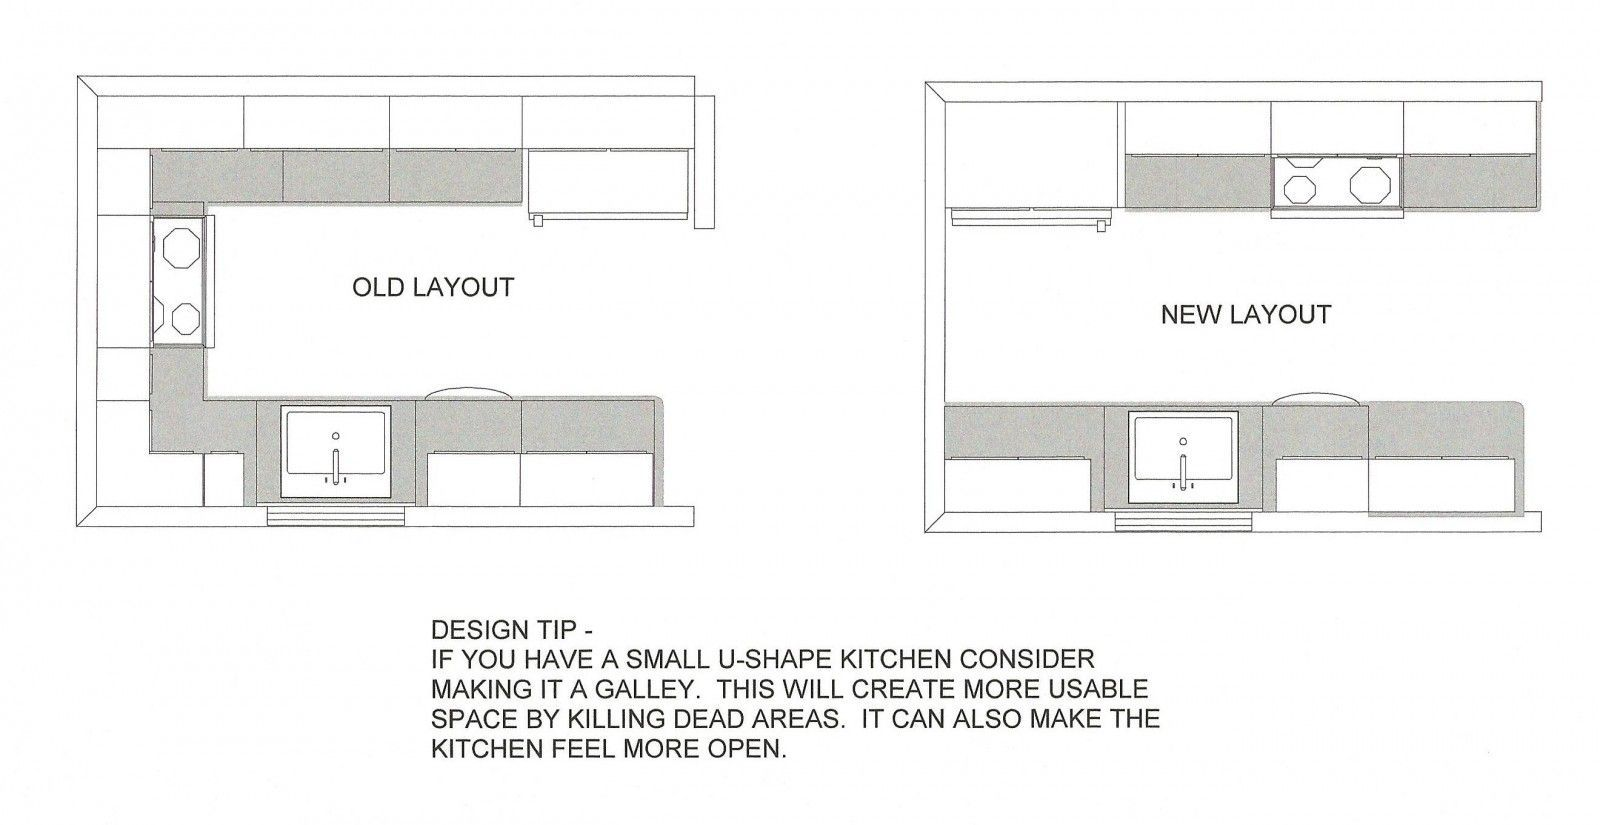 Detailed All-Type Kitchen Floor Plans Review. Galley option for tiny kitchen